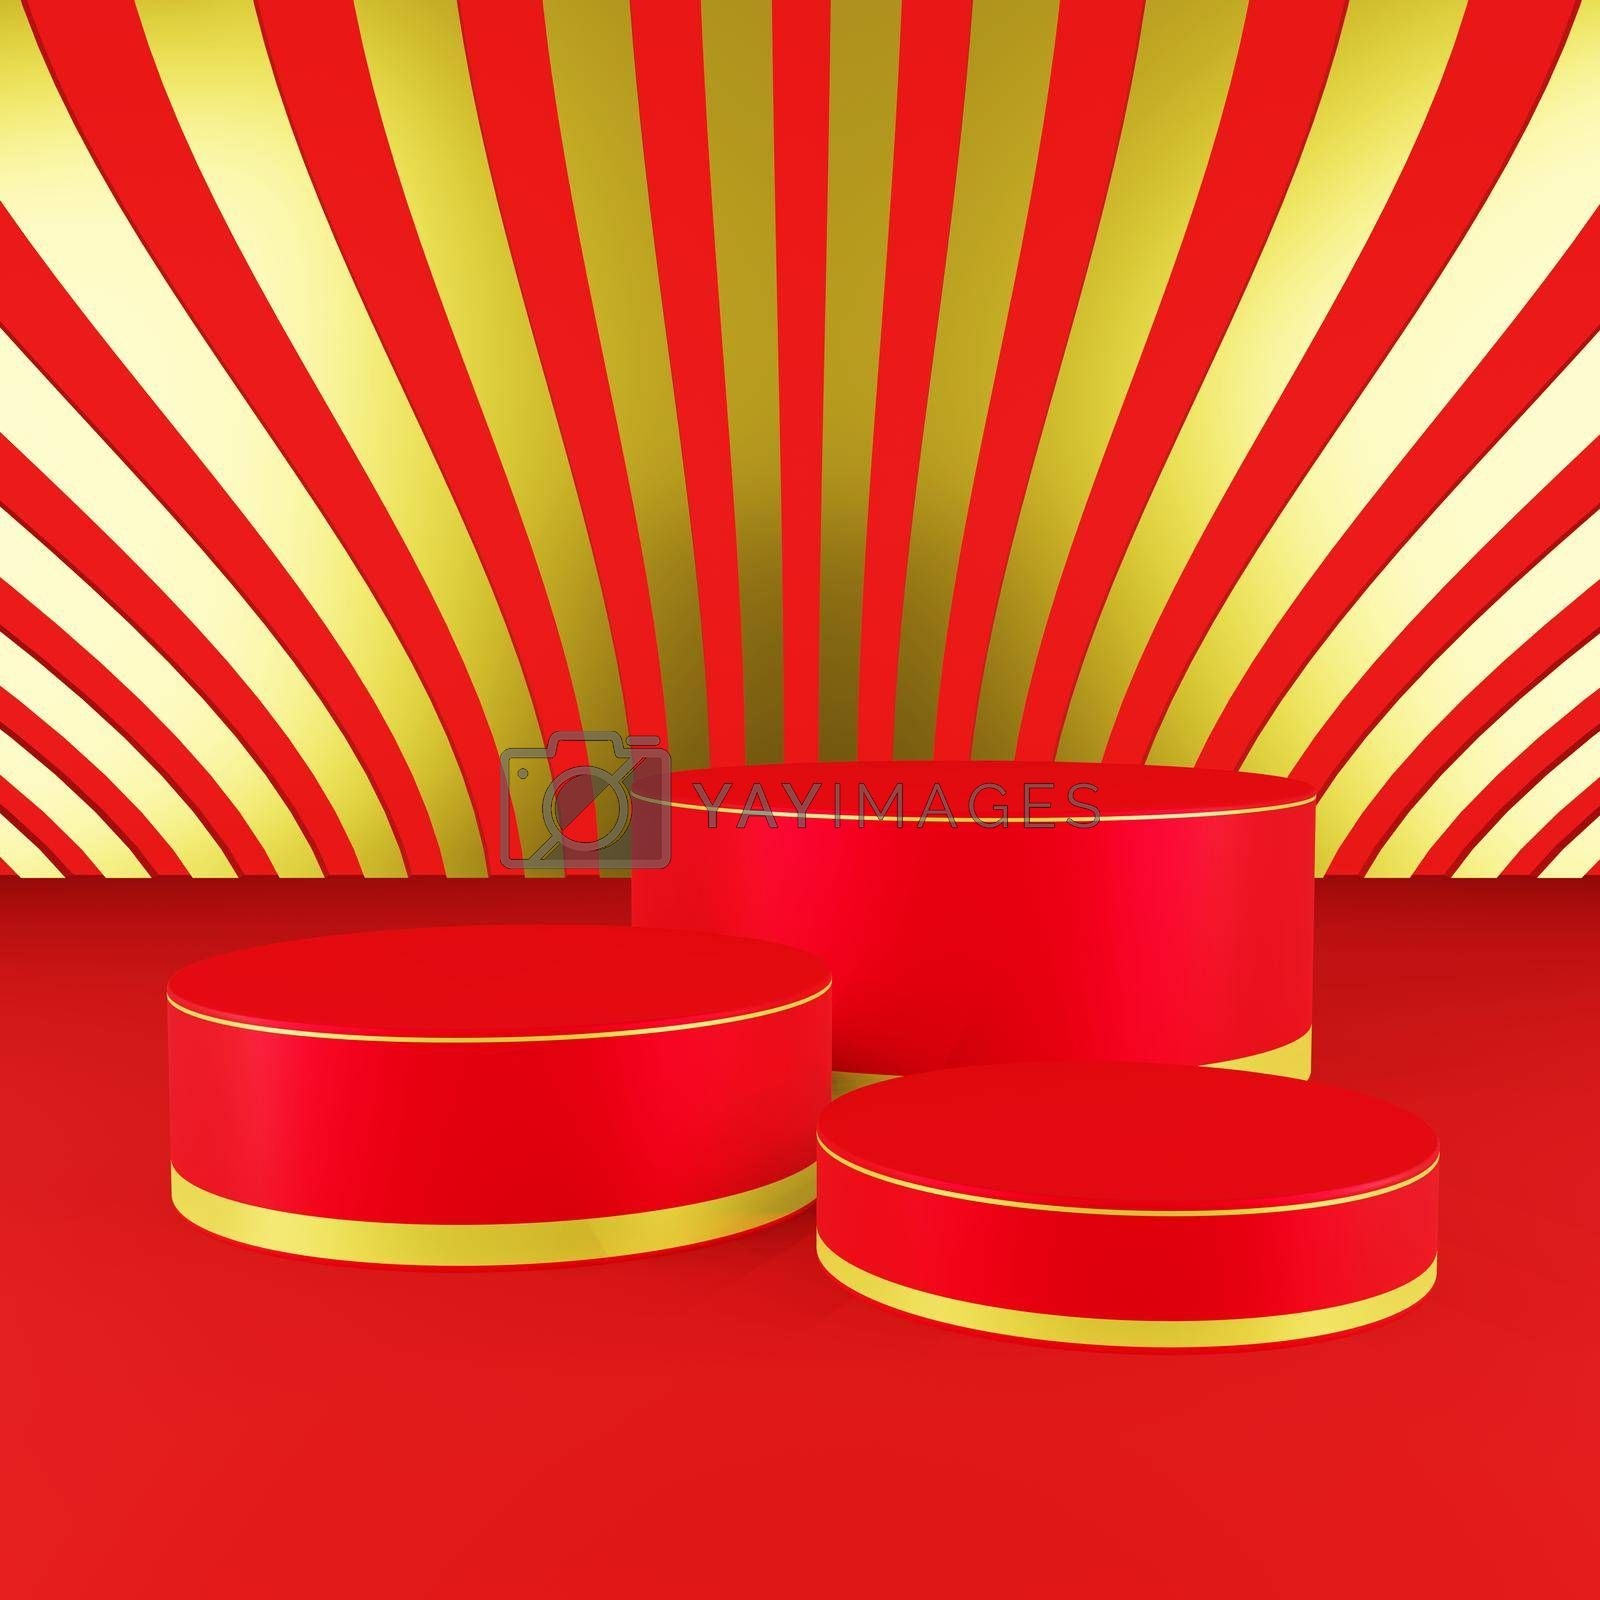 Royalty free image of Red cylinder podium with golden girdle Chinese new year season by eaglesky